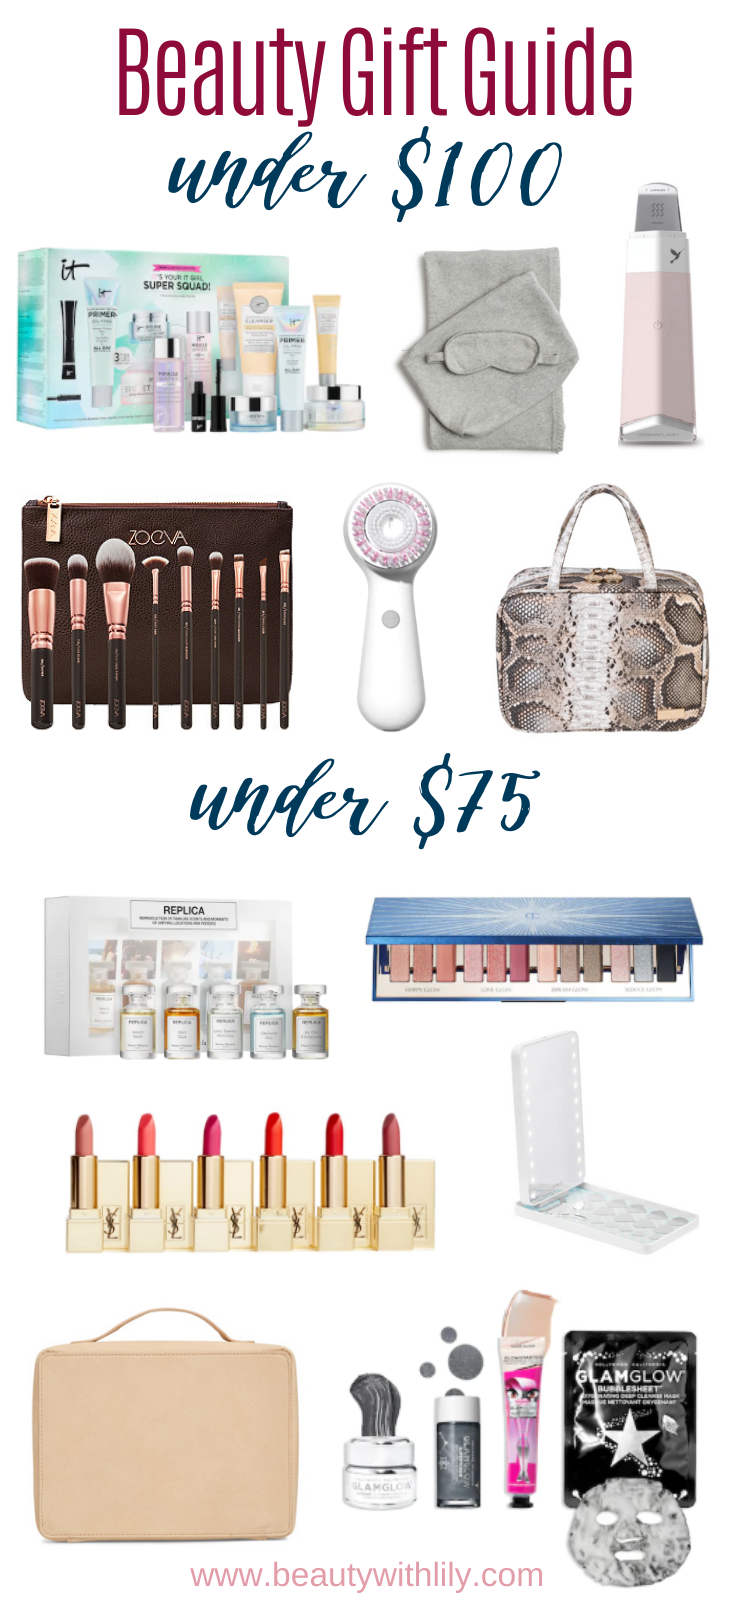 Gift Guide for Beauty Lovers // Beauty Gift Guide // Gift Ideas for Women // Gift Ideas for Teens // Stocking Stuffers for Teens // Stocking Stuffers for Makeup Lovers // Gift Guide for Makeup Lovers   Beauty With Lily